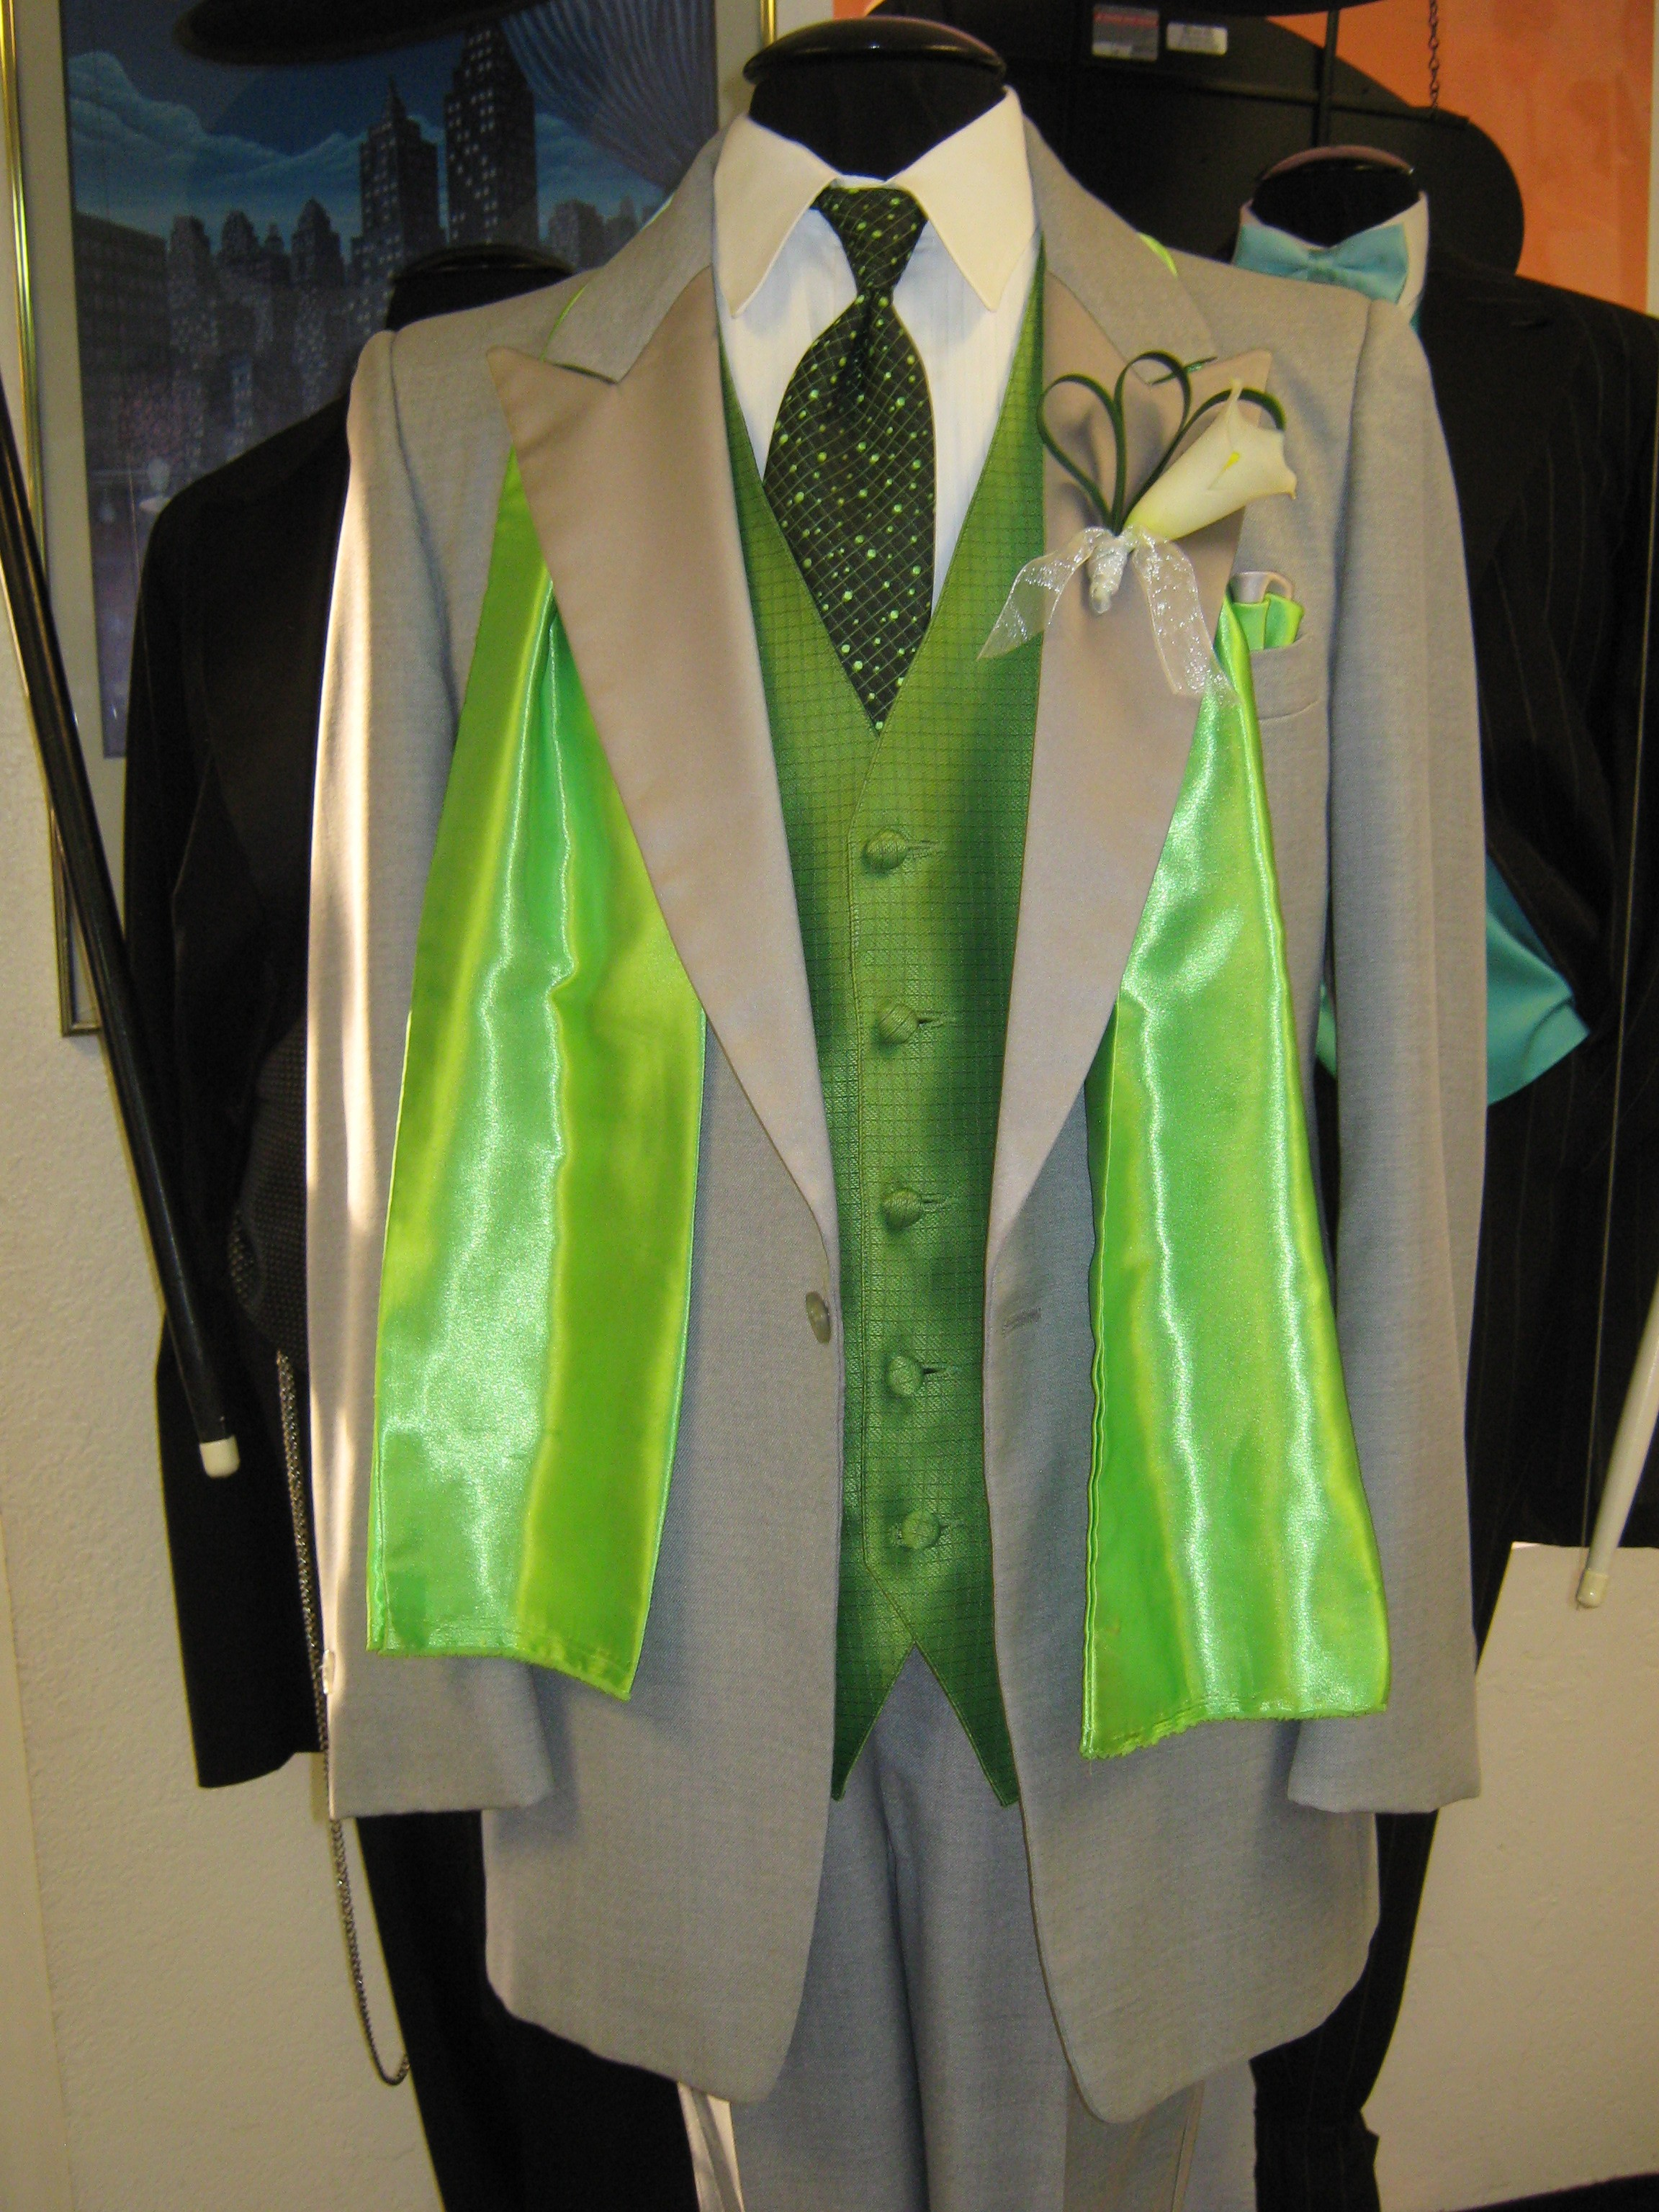 last chance for prom tuxedos rose tuxedo wedding tuxedo